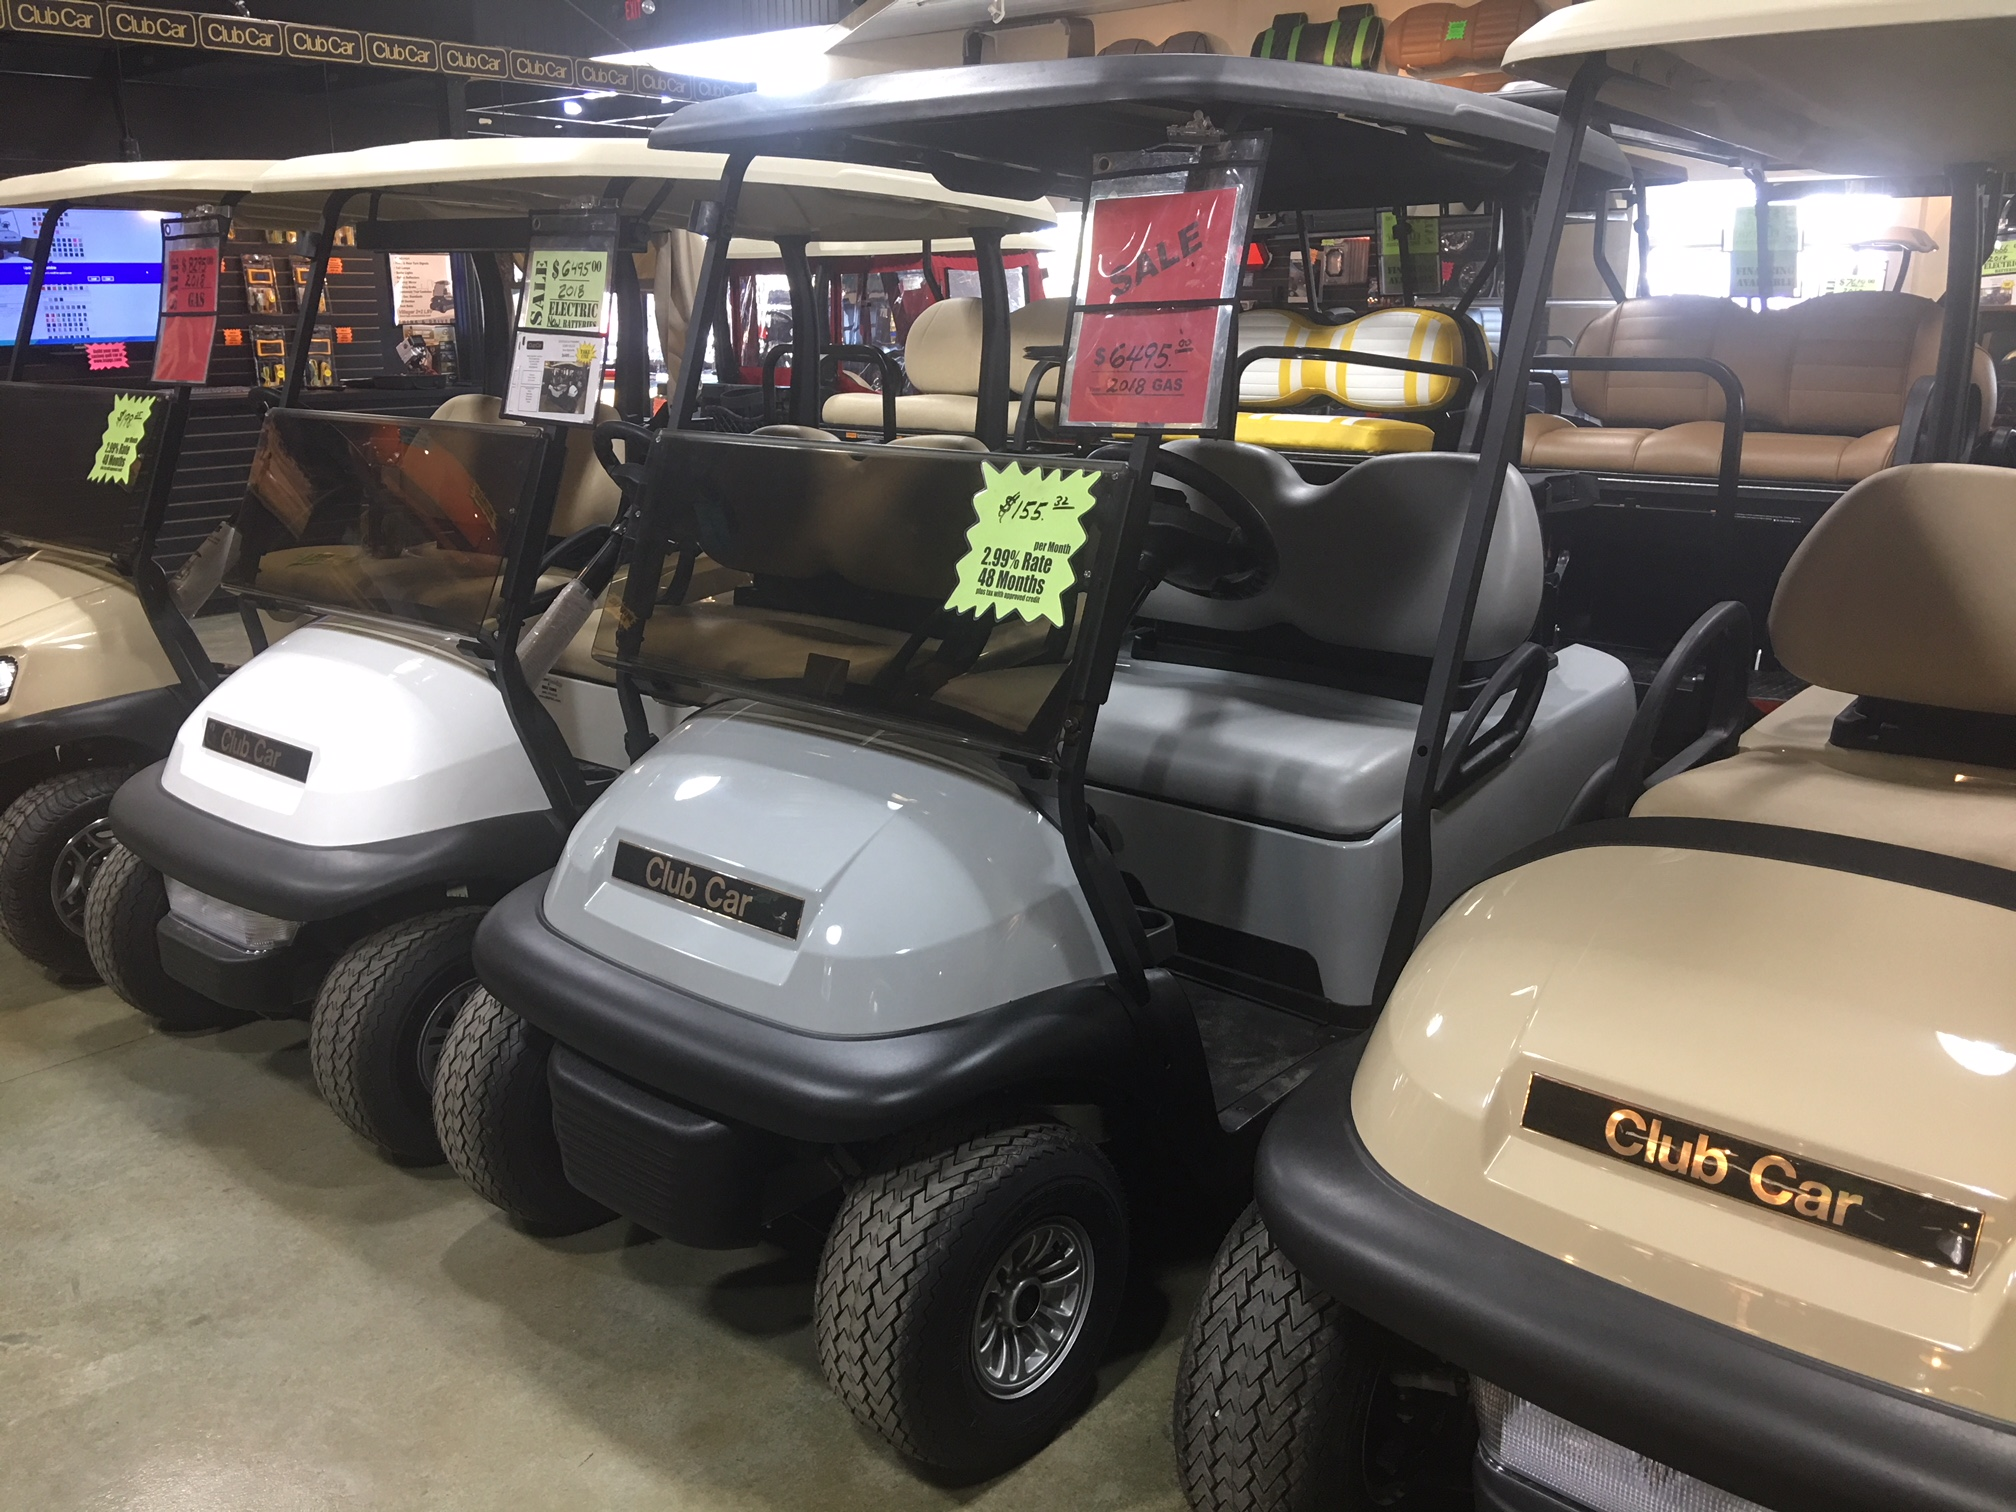 2018 Grey Club Car Precedent Gas Golf Car $6495